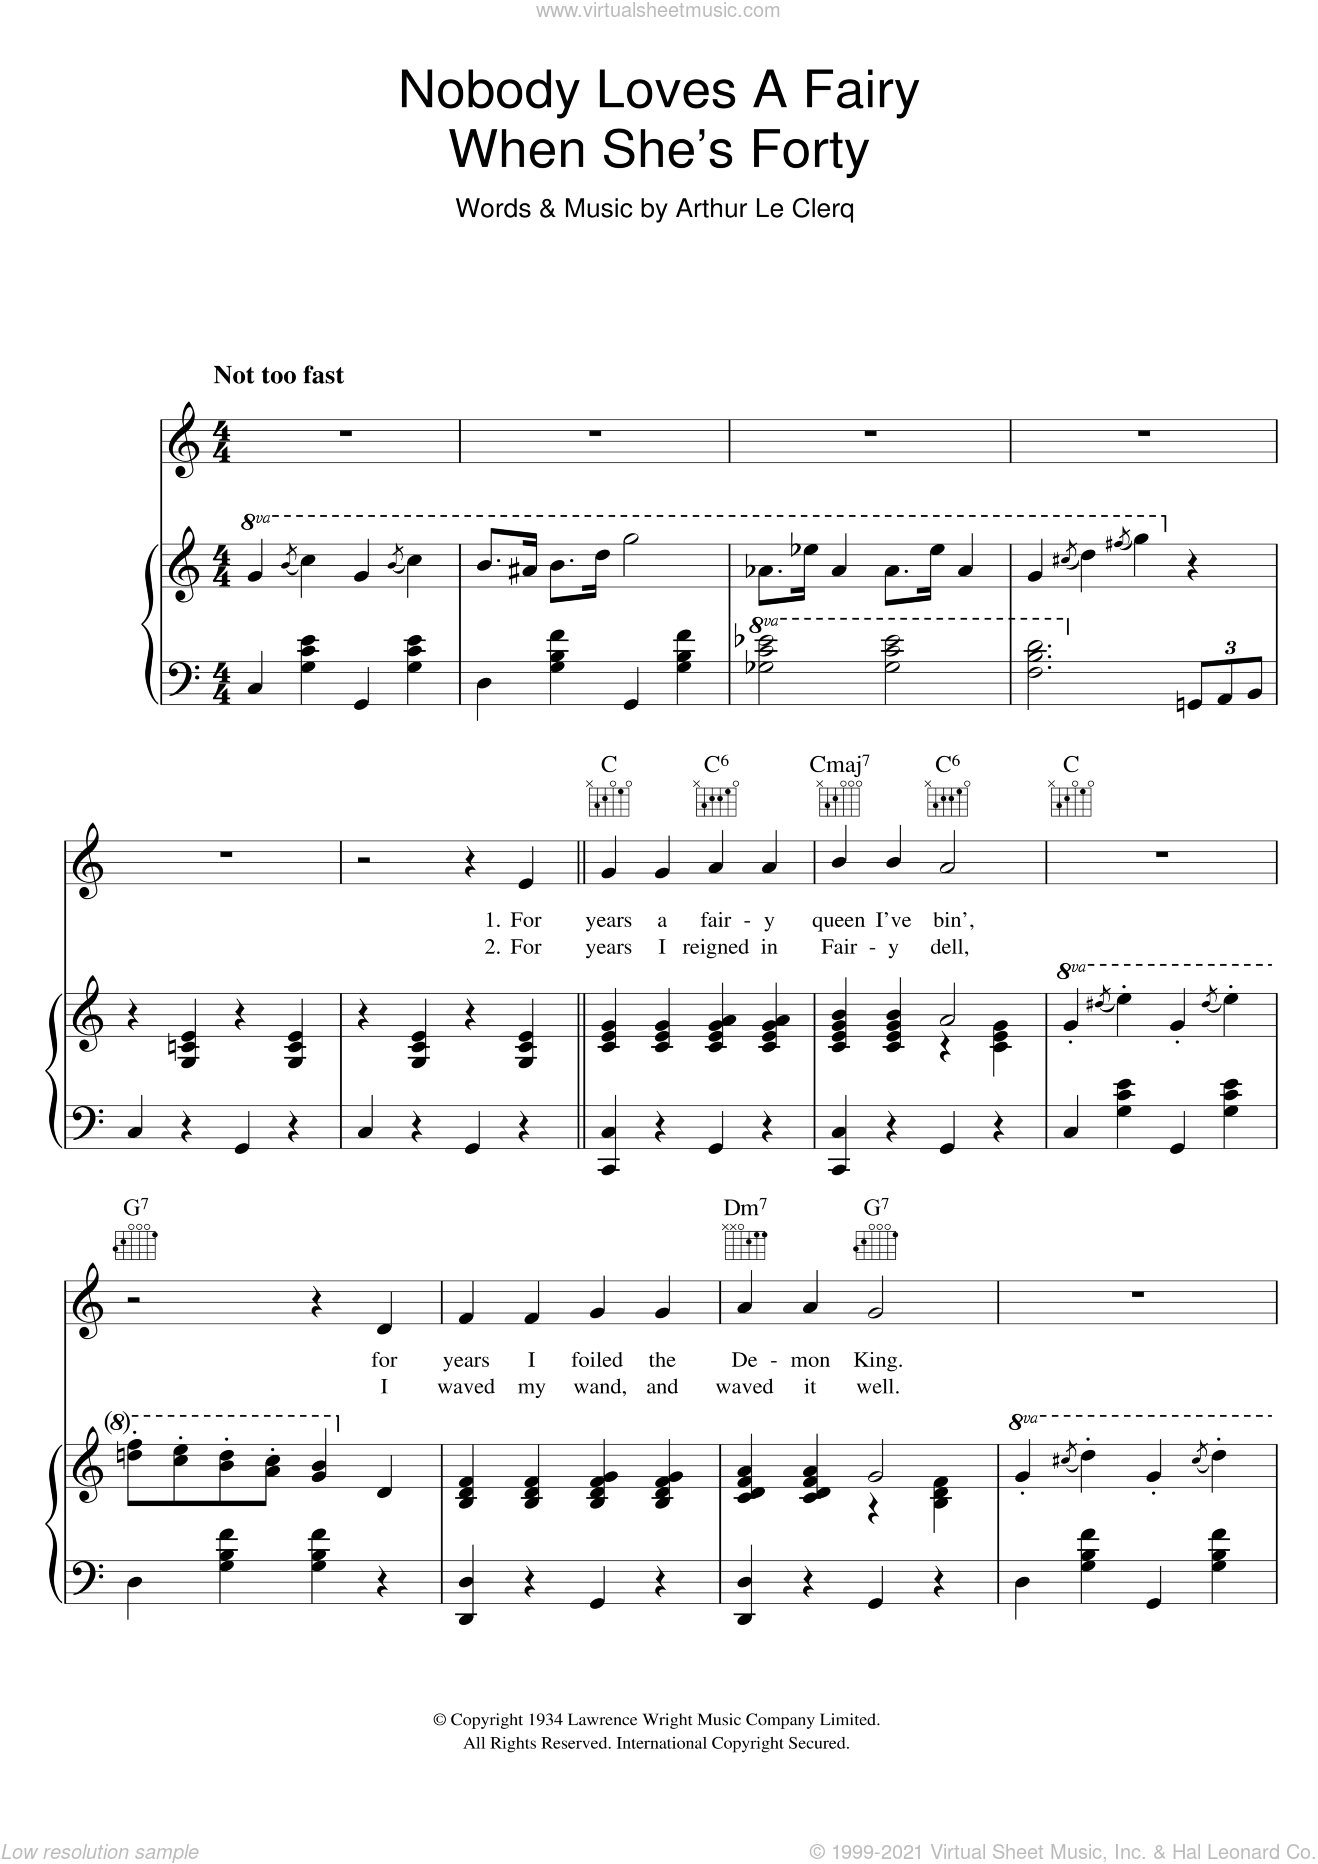 Nobody Loves A Fairy When She's Forty sheet music for voice, piano or guitar by Billy Cotton and Arthur Le Clerq, intermediate skill level